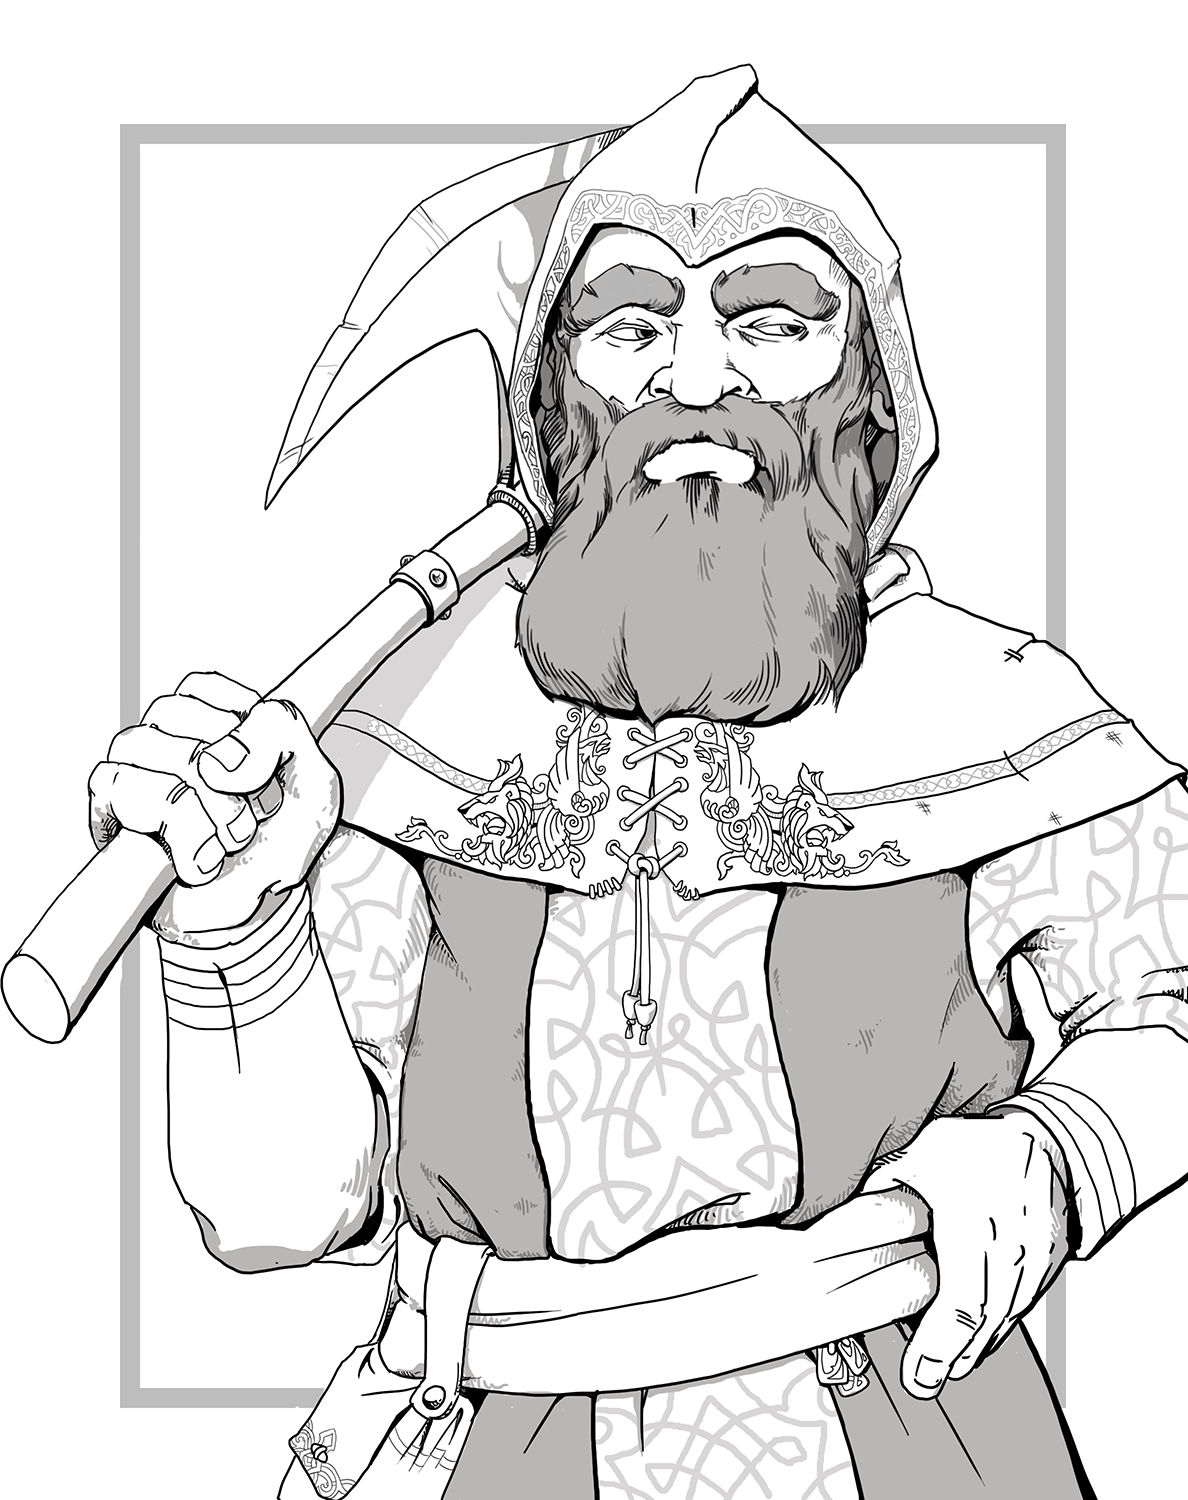 Dwarf (Dungeons & Dragons) - Wikipedia